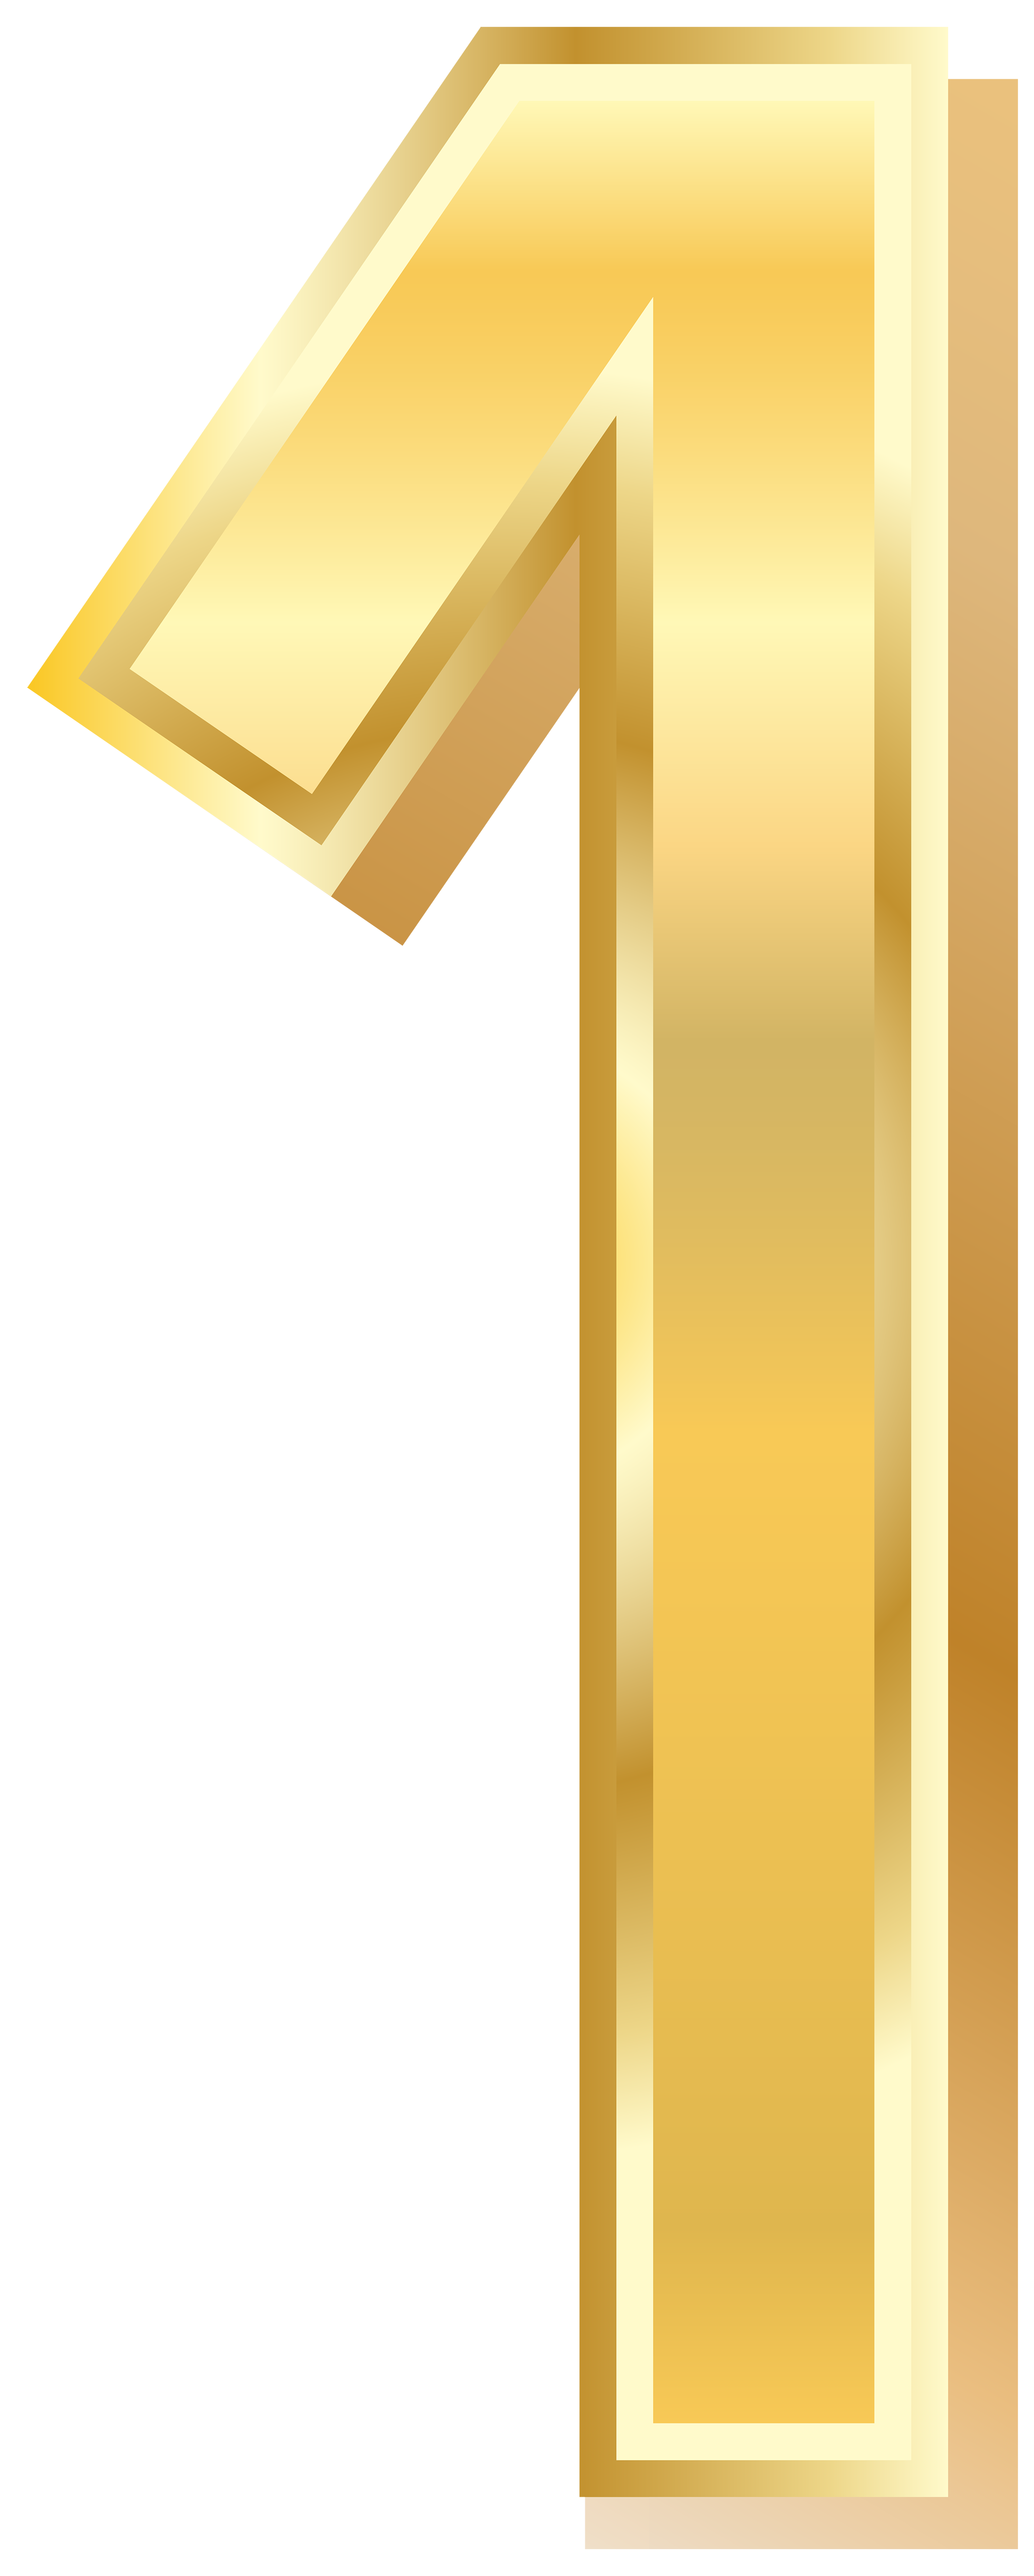 Number 1 clipart yellow. Gold style one png